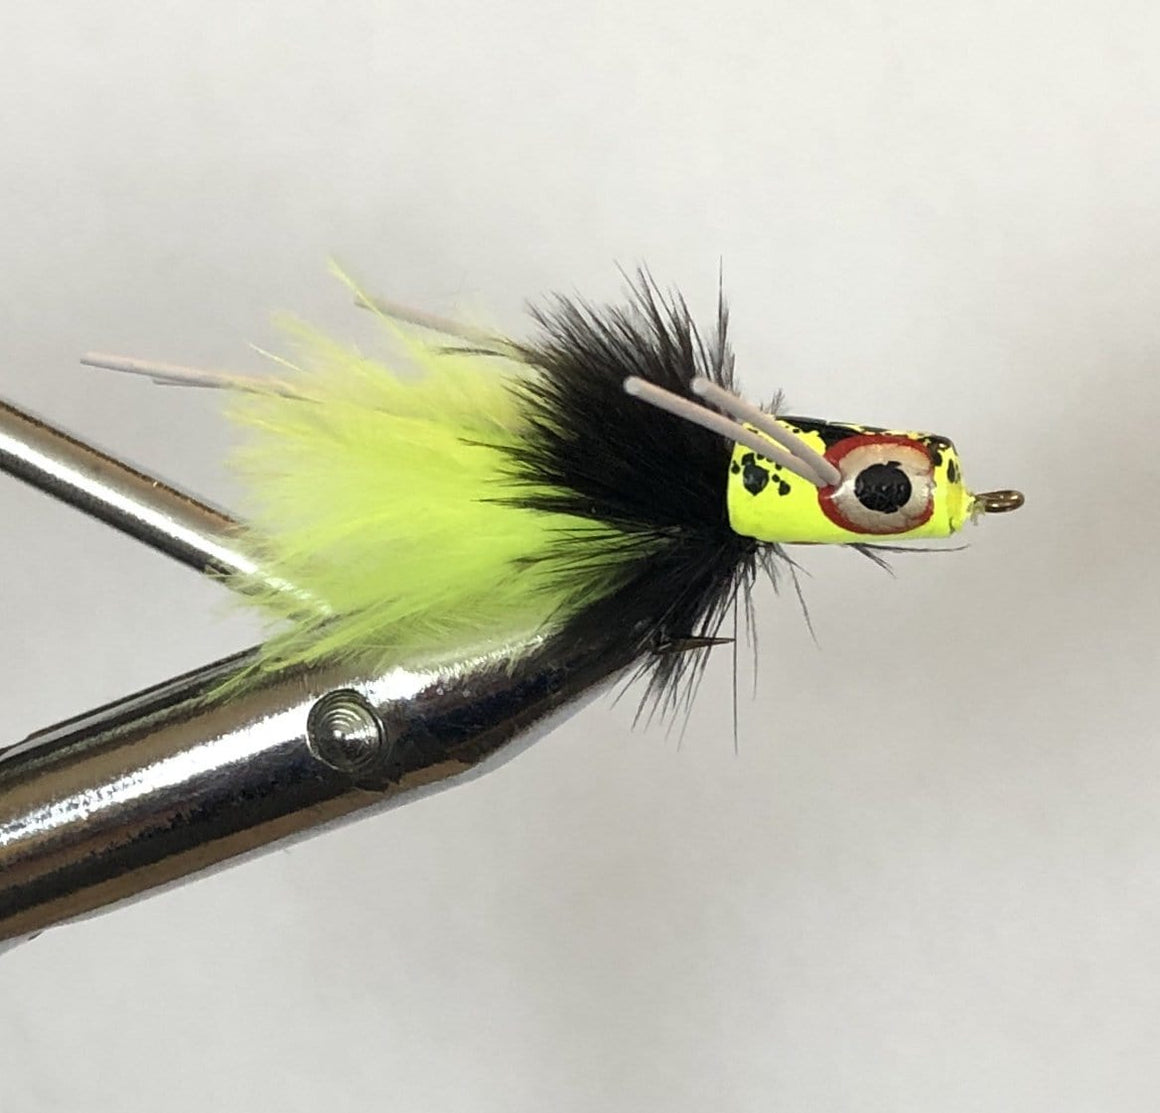 Wild Water Chartreuse and Black Snub Nose Slider Popper by Pultz Poppers, Size 6, Qty. 4